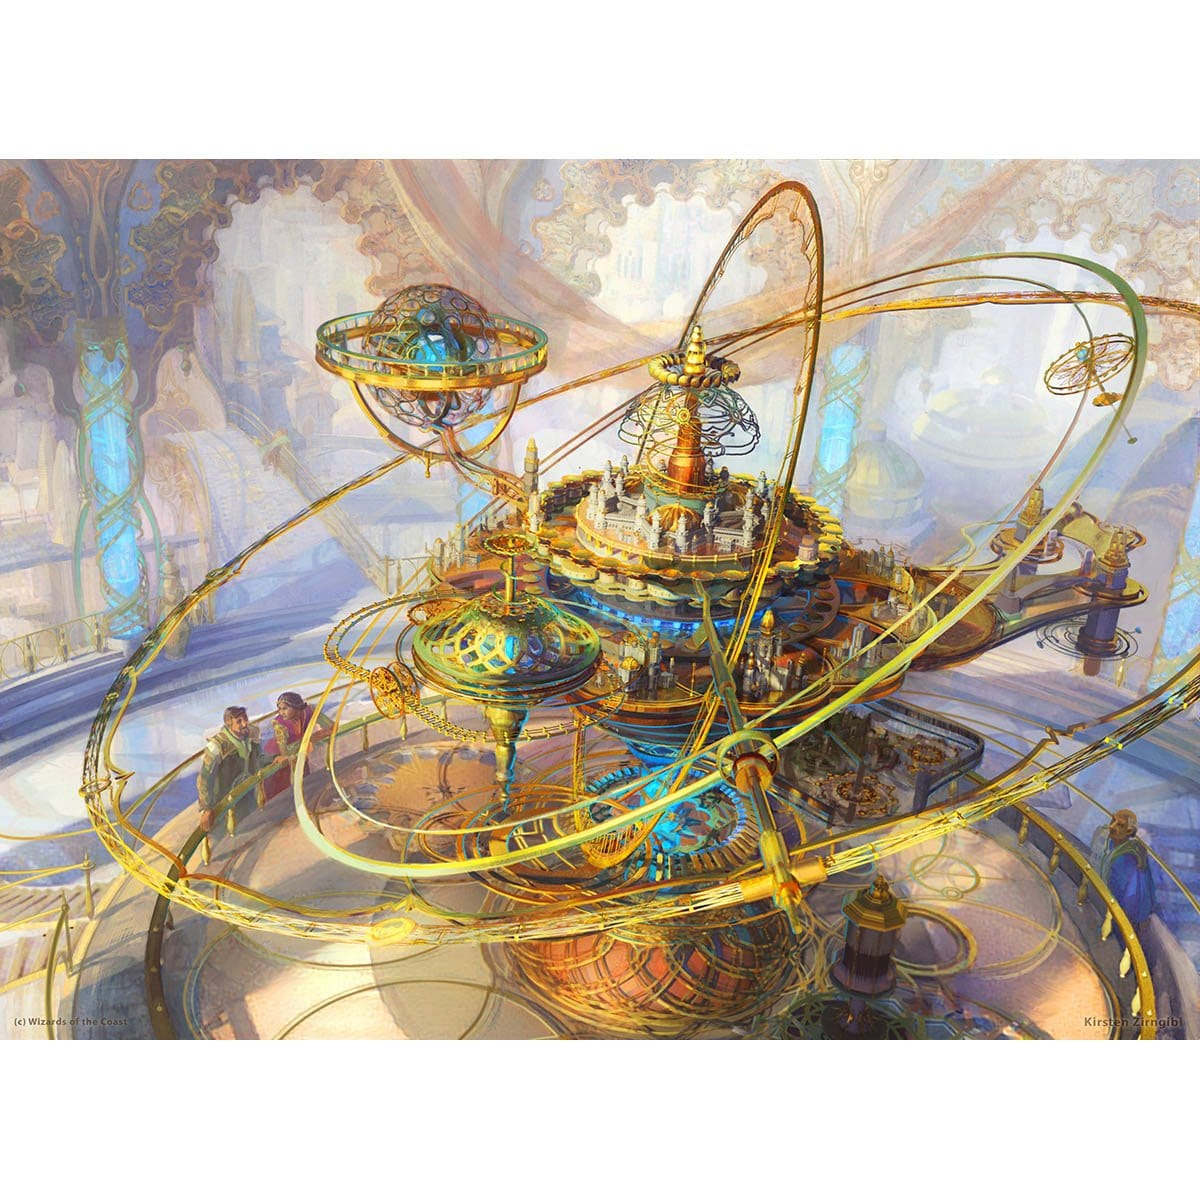 Ghirapur Orrery Print - Print - Original Magic Art - Accessories for Magic the Gathering and other card games